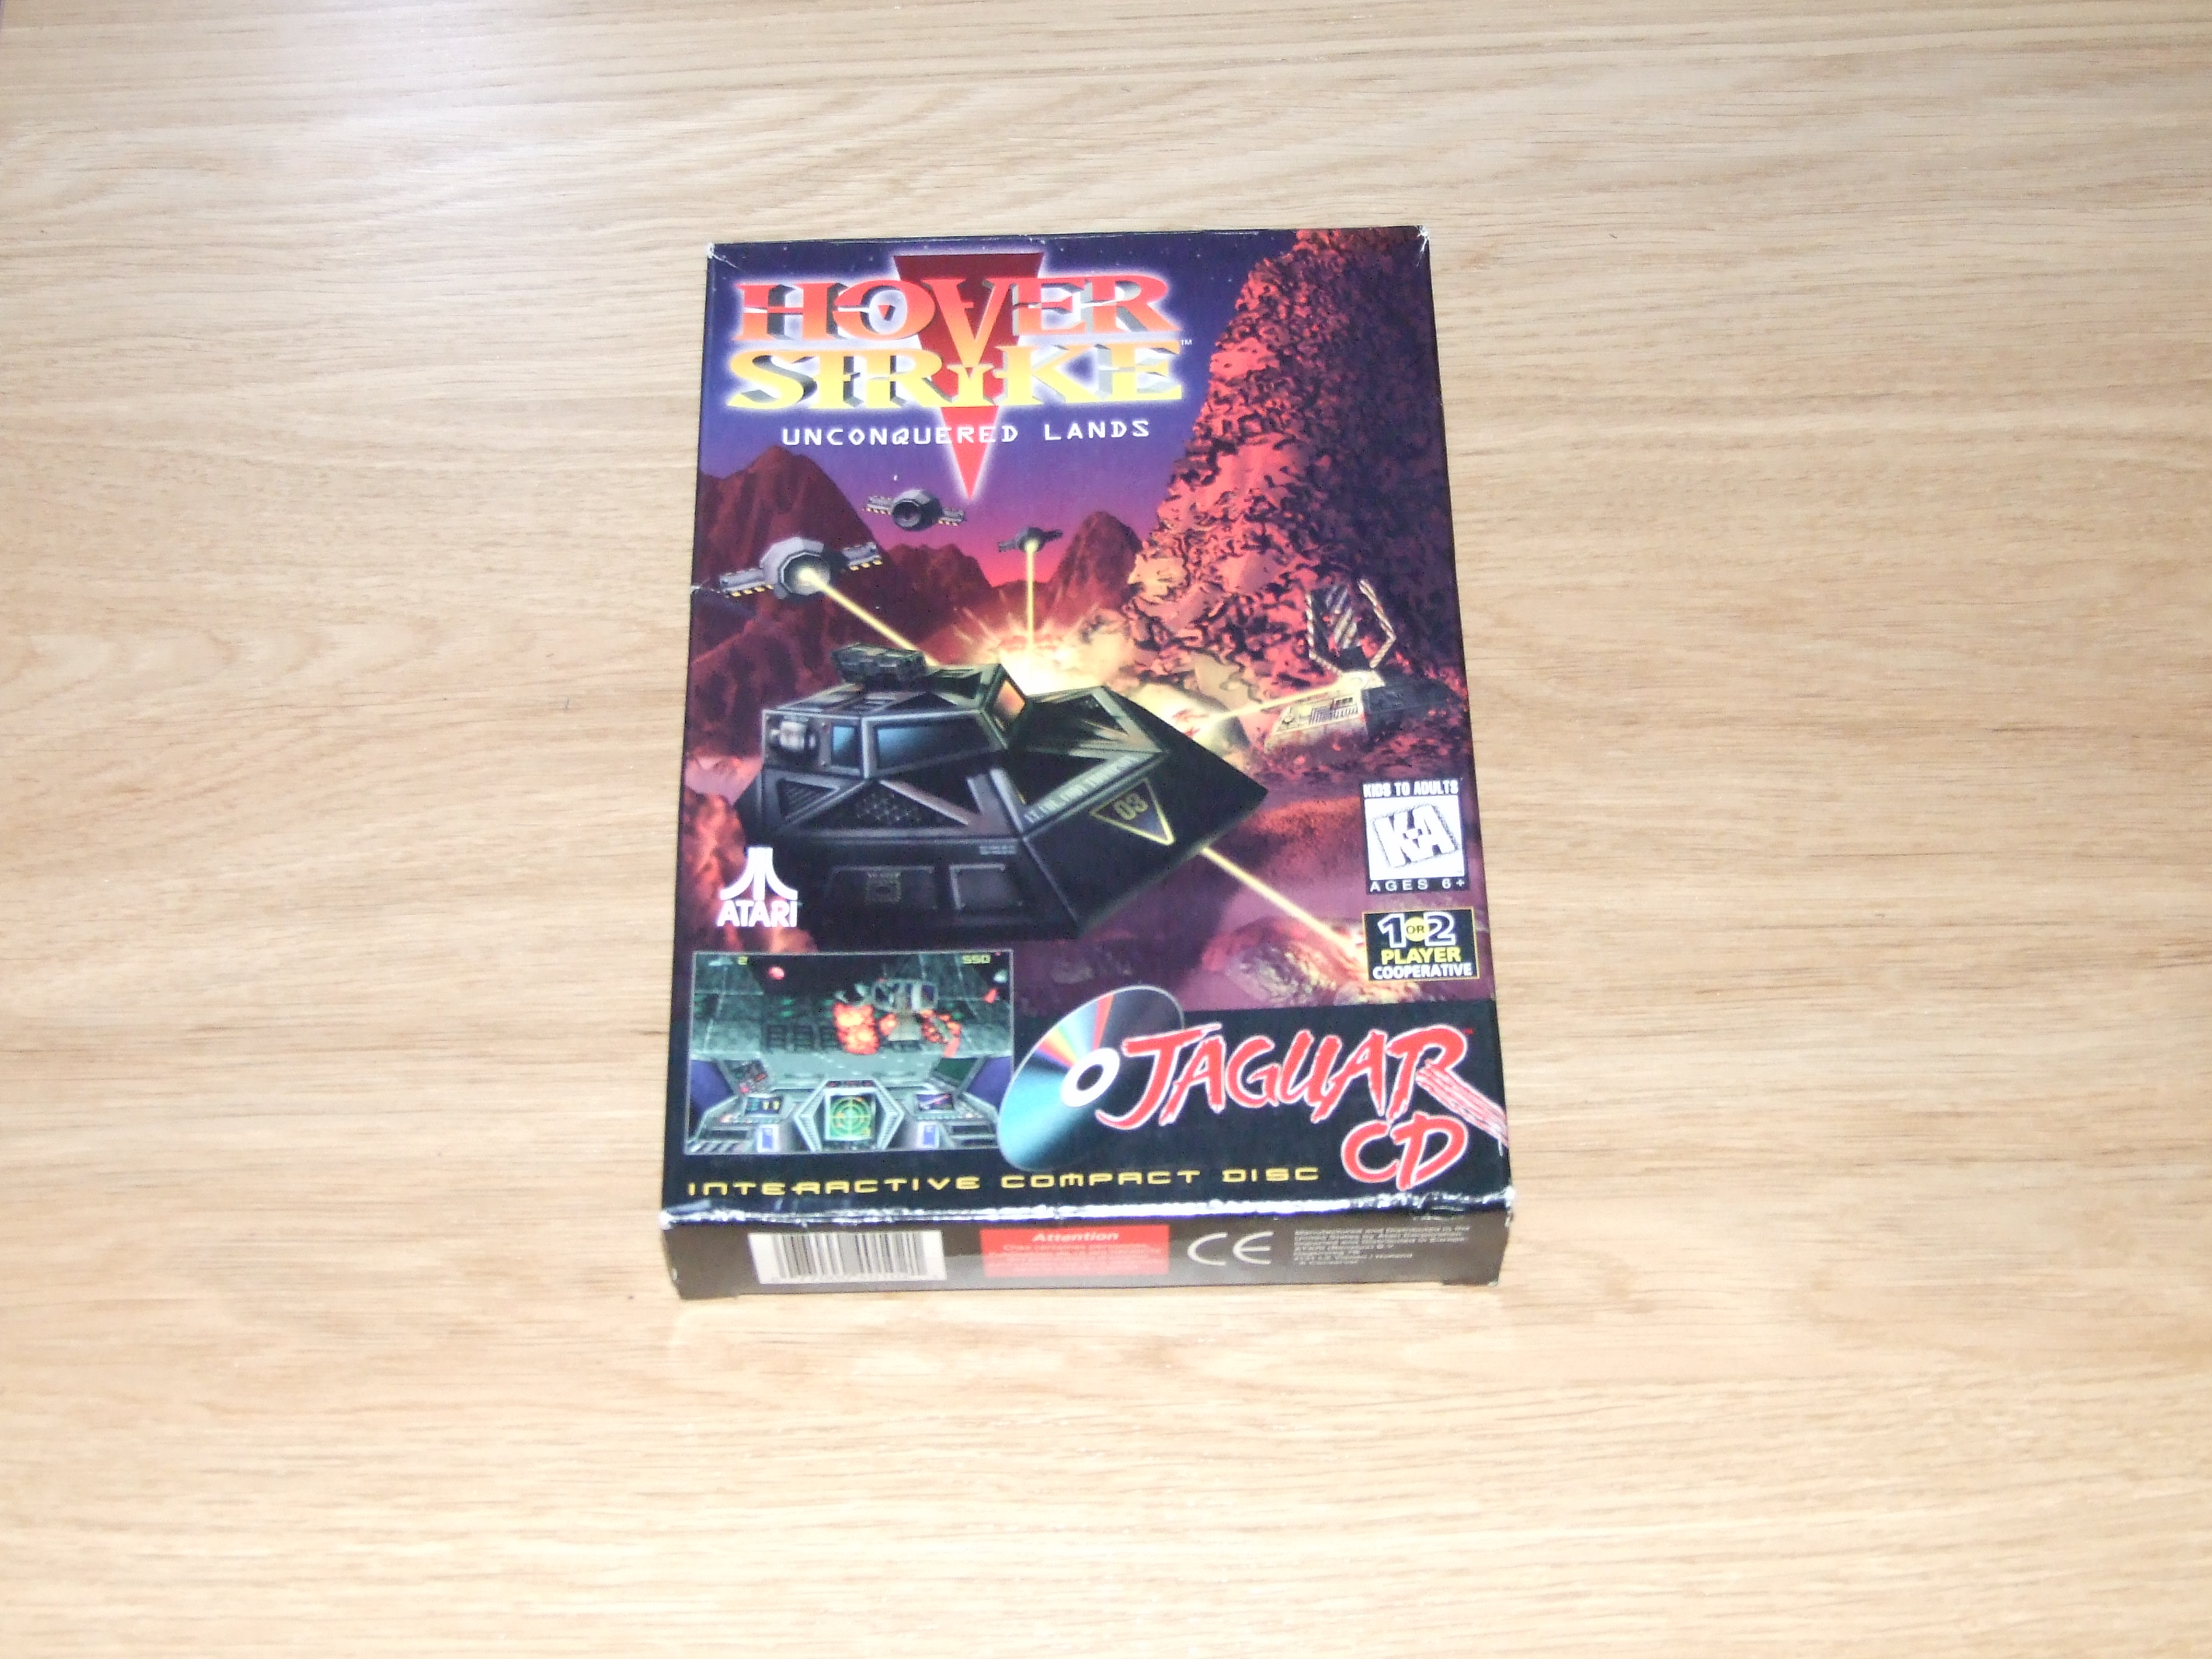 Hover Strike: Unconquered Lands for the Atari Jaguar CD box, on it's own.